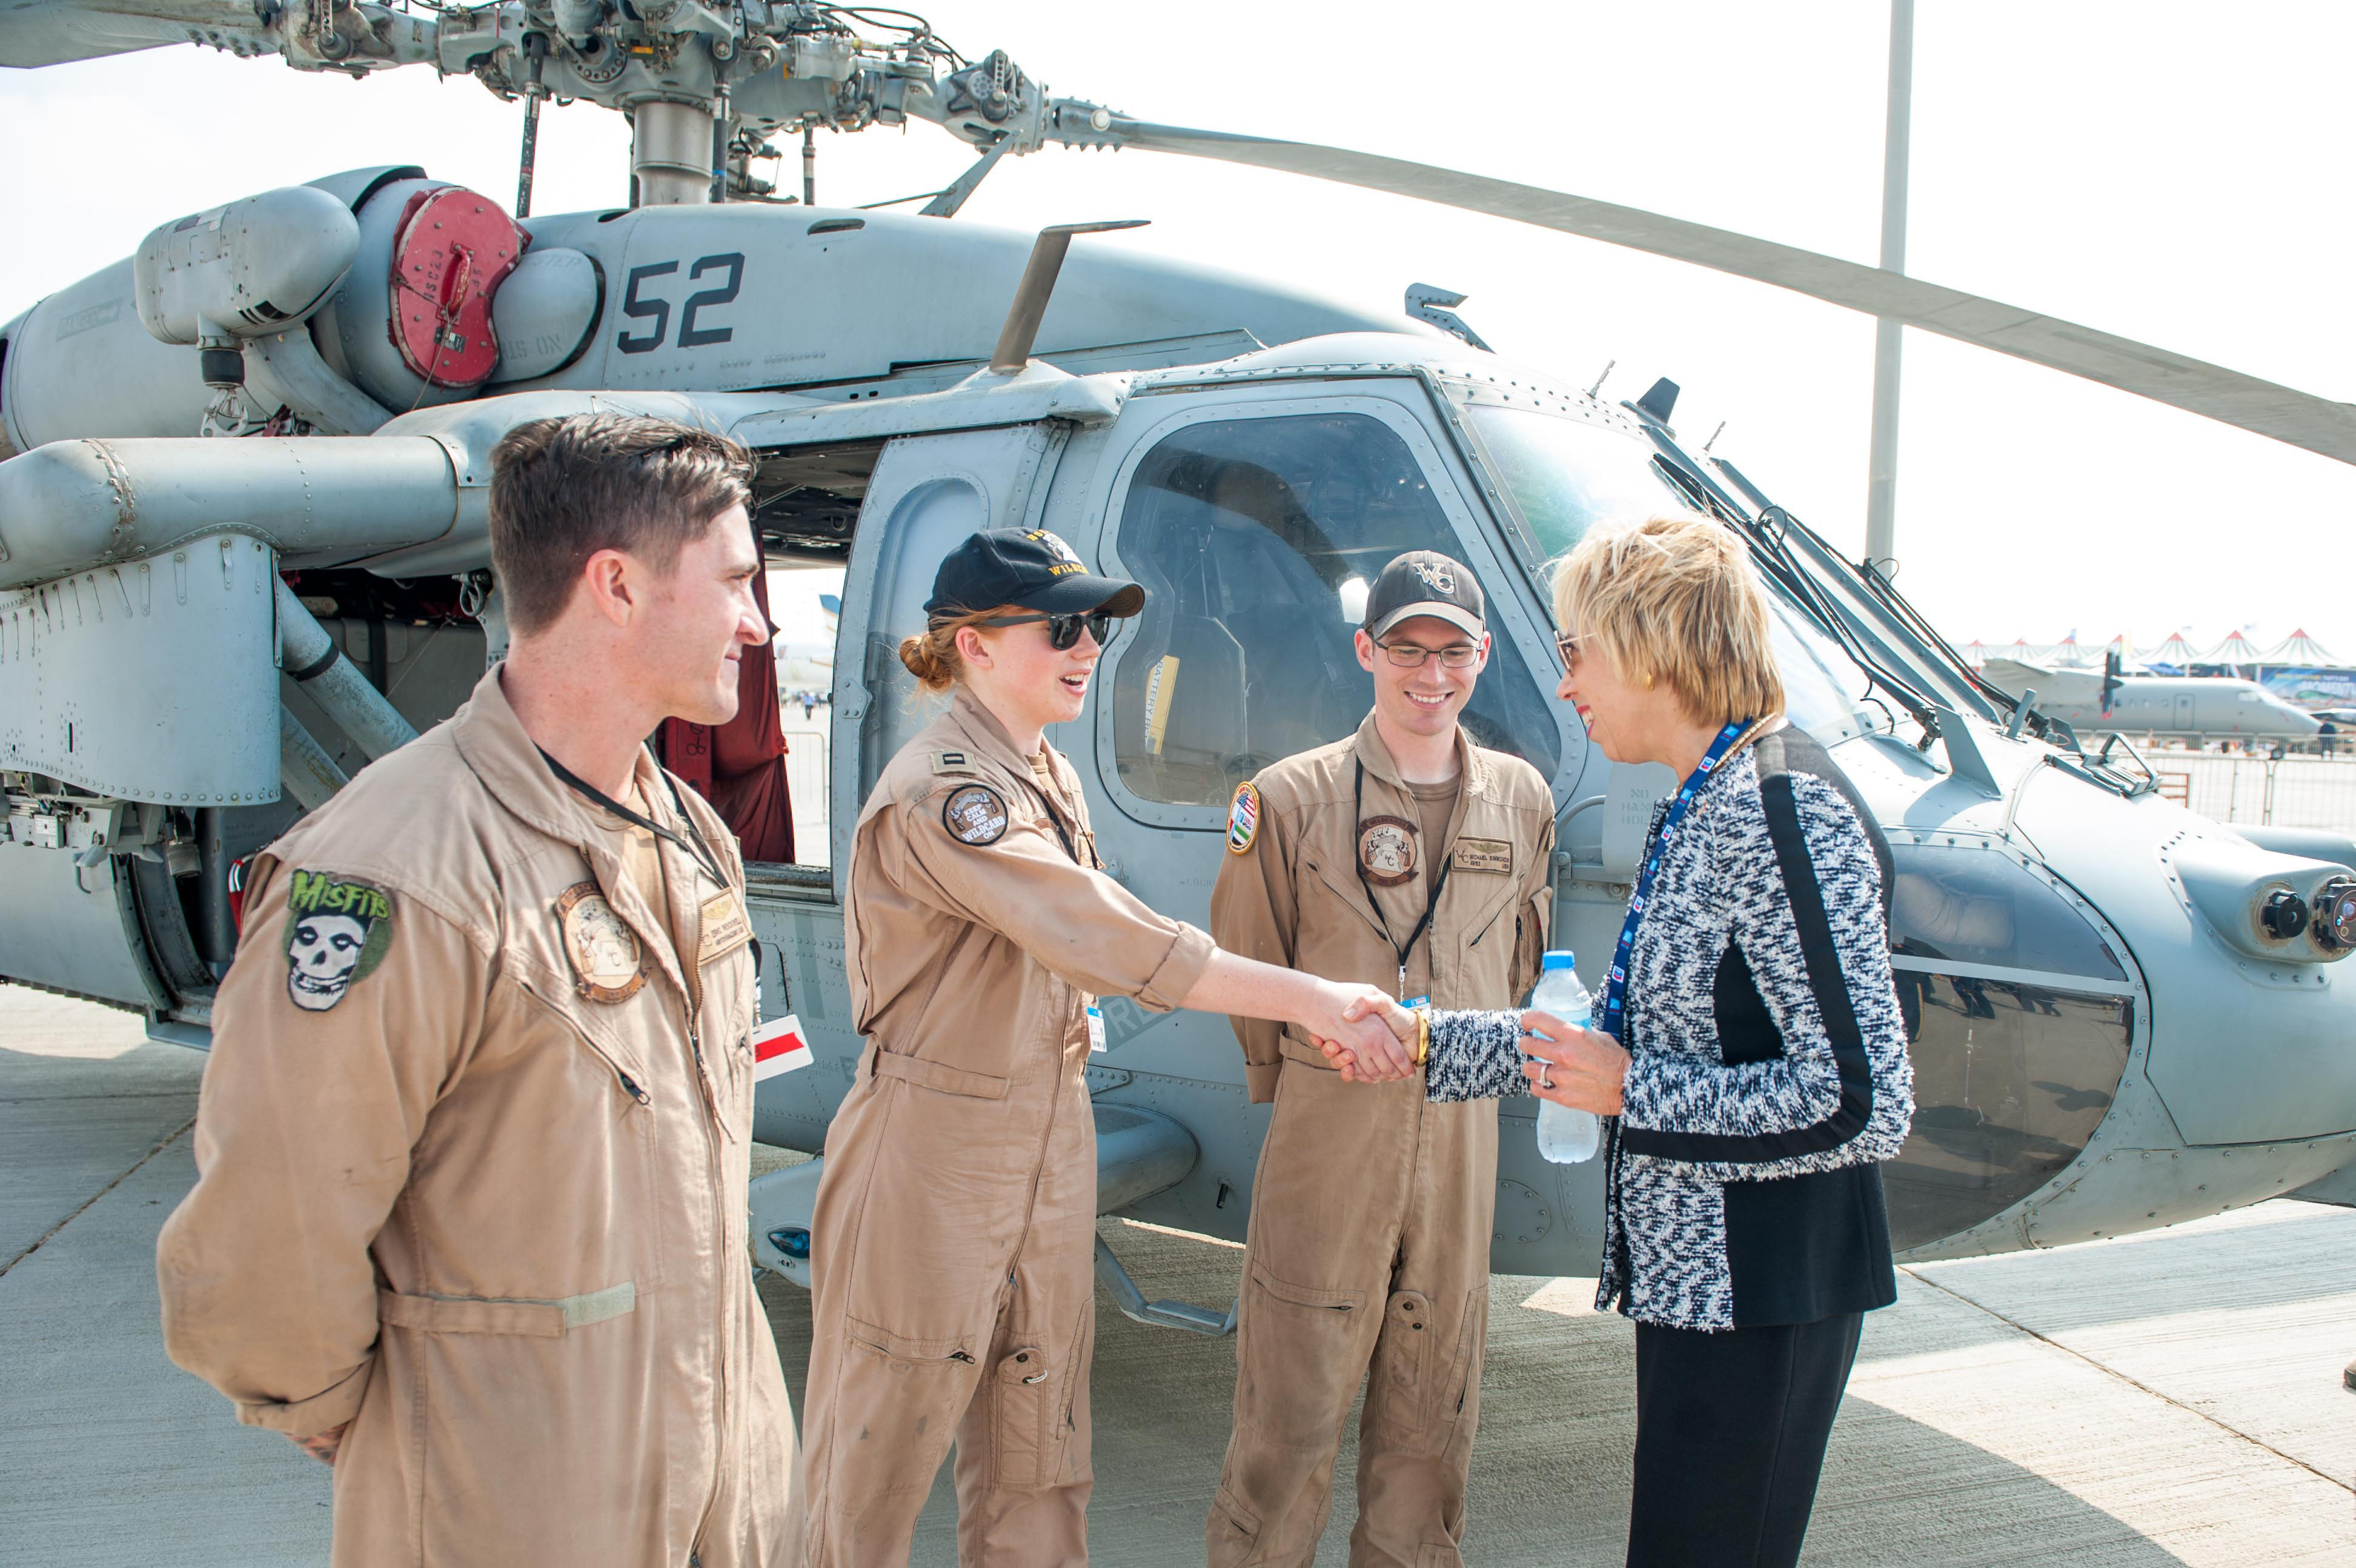 Ellen Lord, pentagon acquisition head, meets with a crew of an MH-60S Seahawk helicopter at the Dubai Airshow in November 2017. Lord is working to change the current acquisition setup. (Alexander A. Ventura II/U.S. Navy)